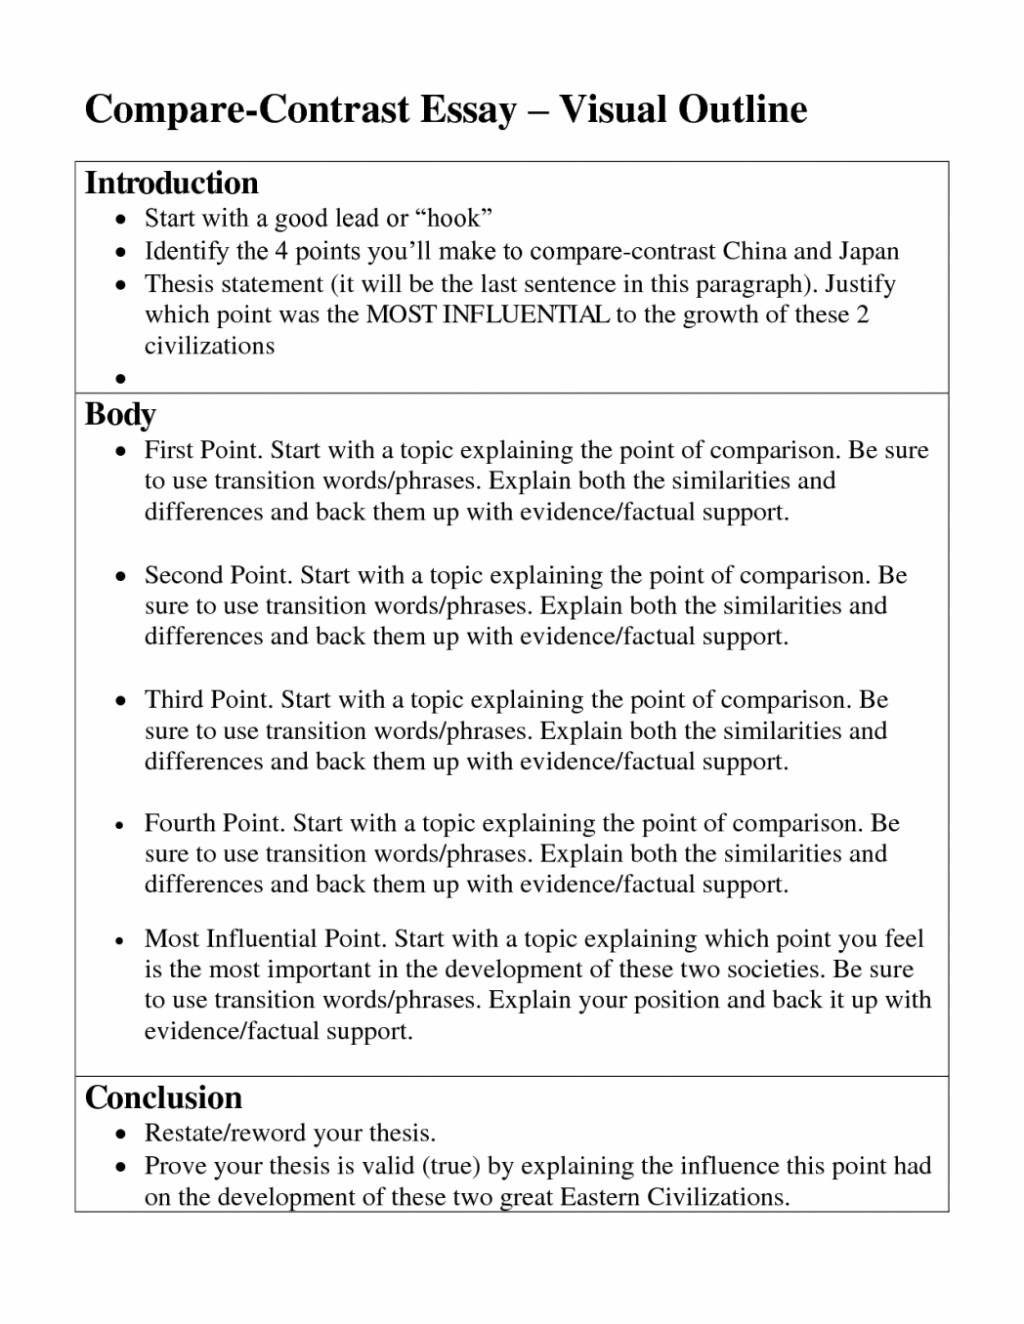 008 Make Money Writing Essays How To Write Essay Outline Template Student For 1048x1356 Best Uni College Scholarship Large